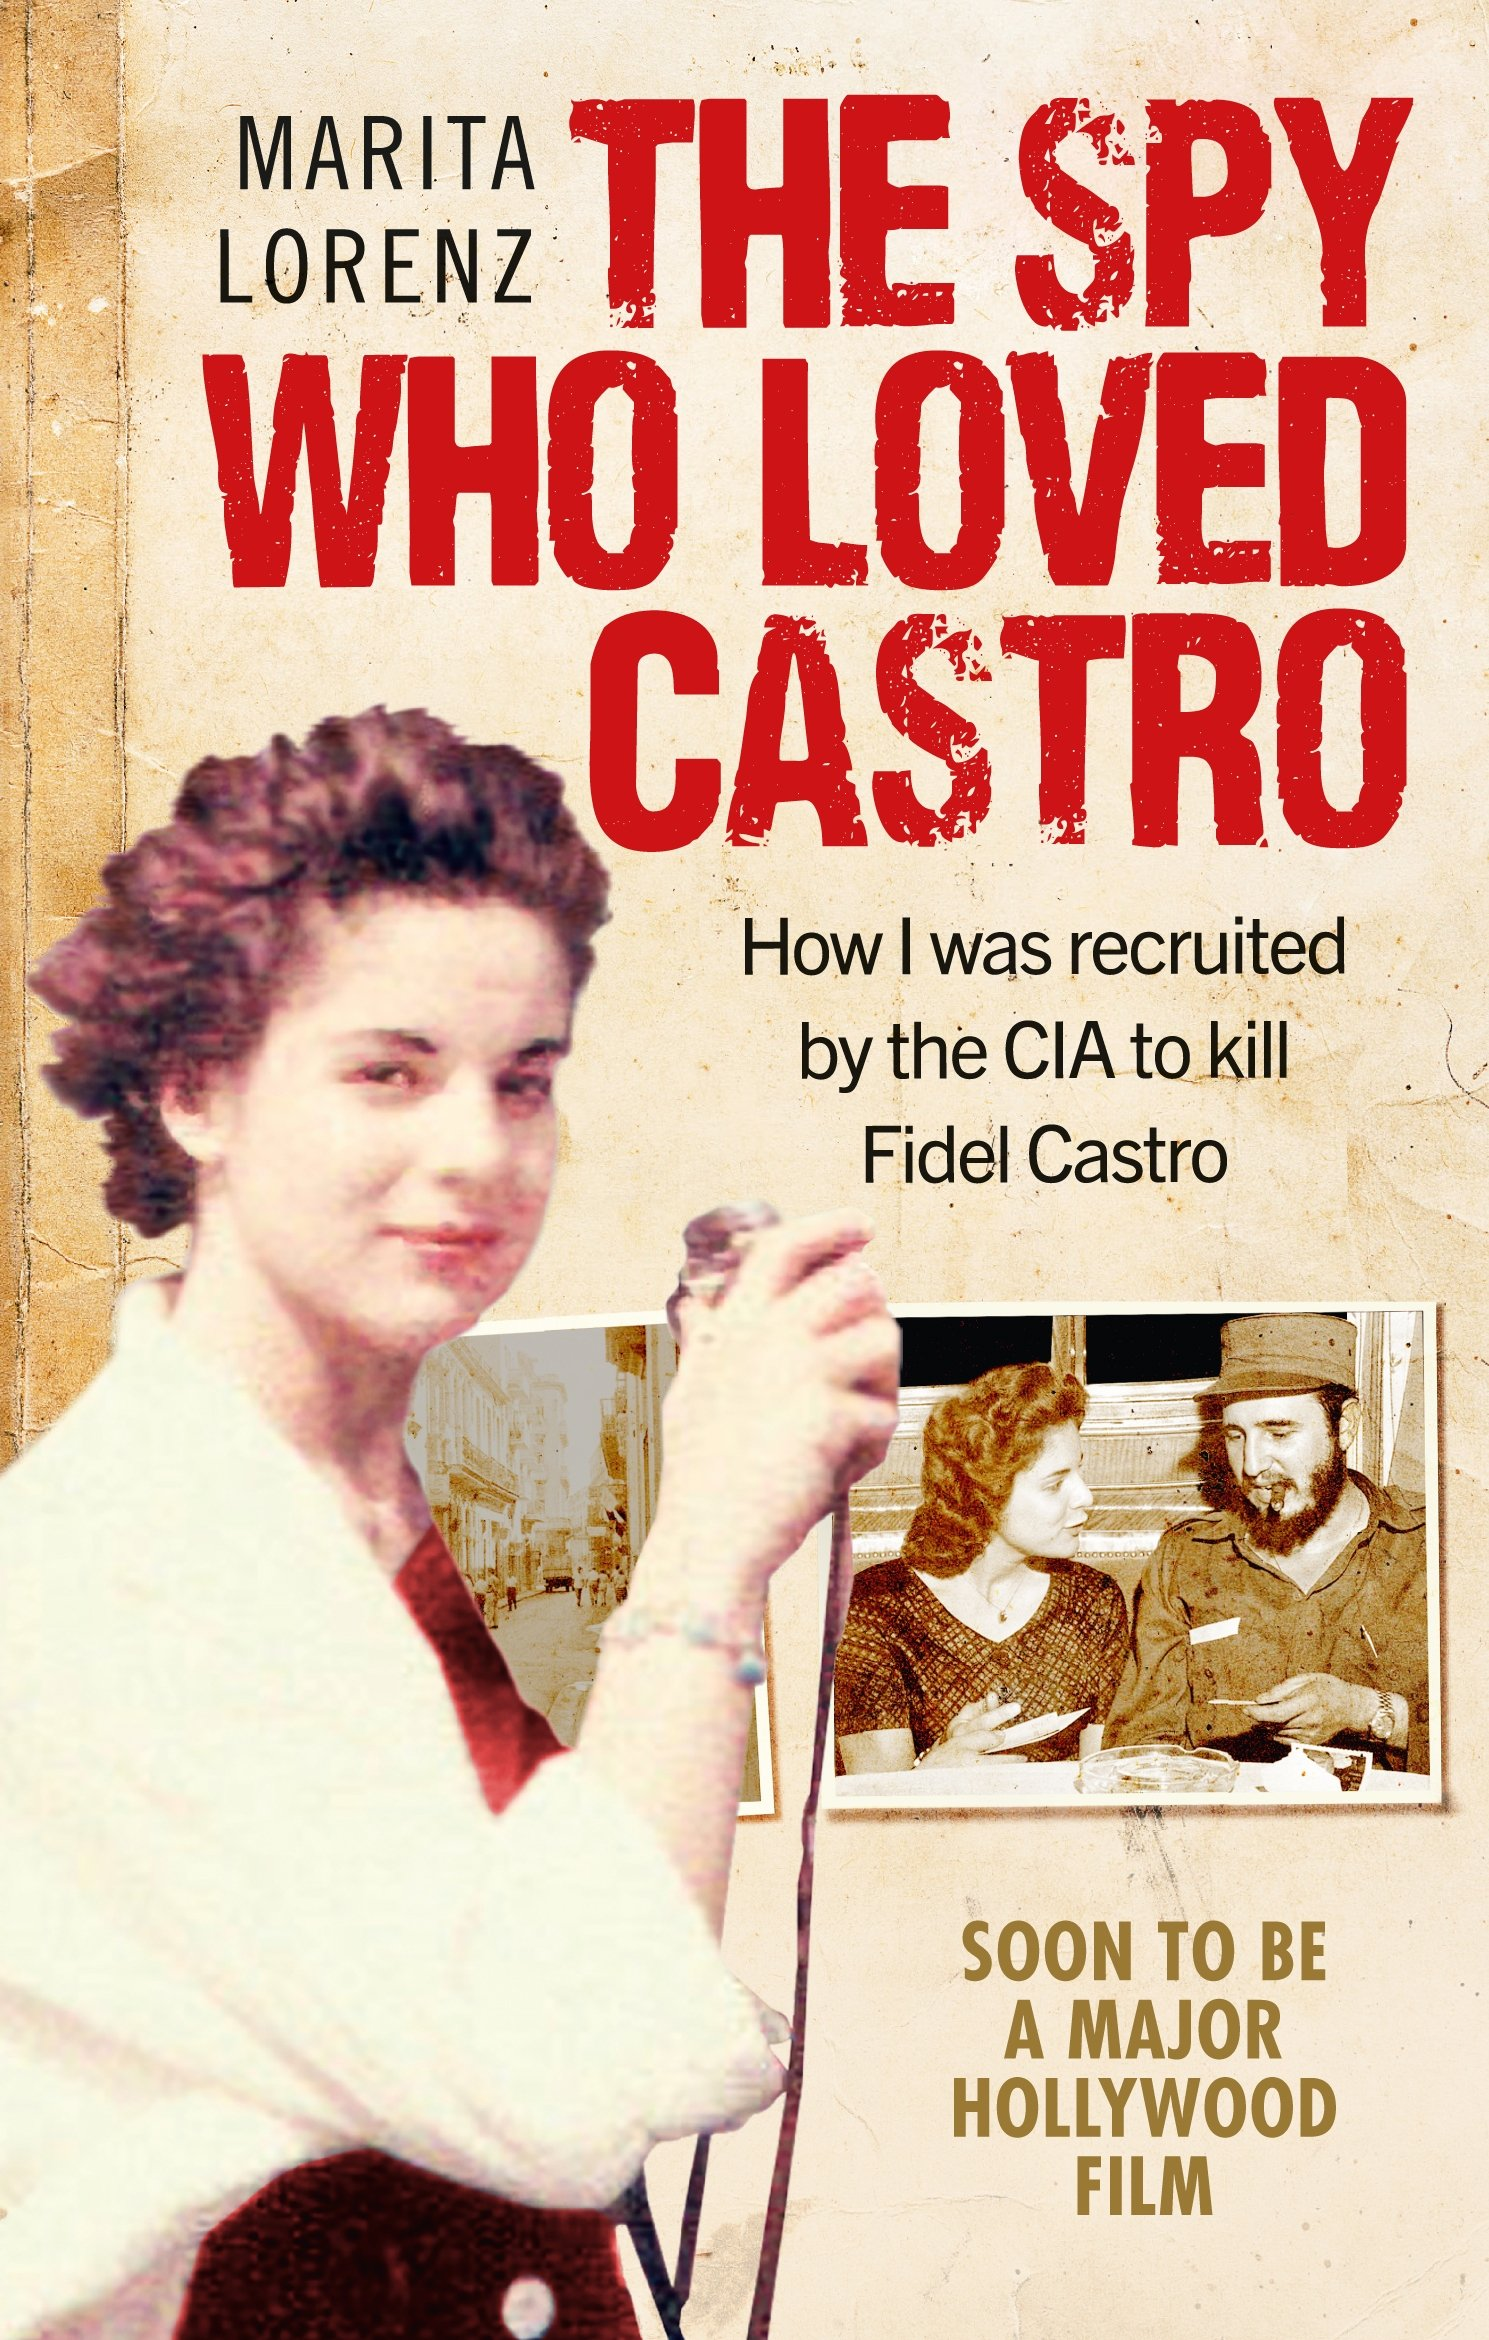 The Spy Who Loved Castro How I was recruited by the CIA to kill